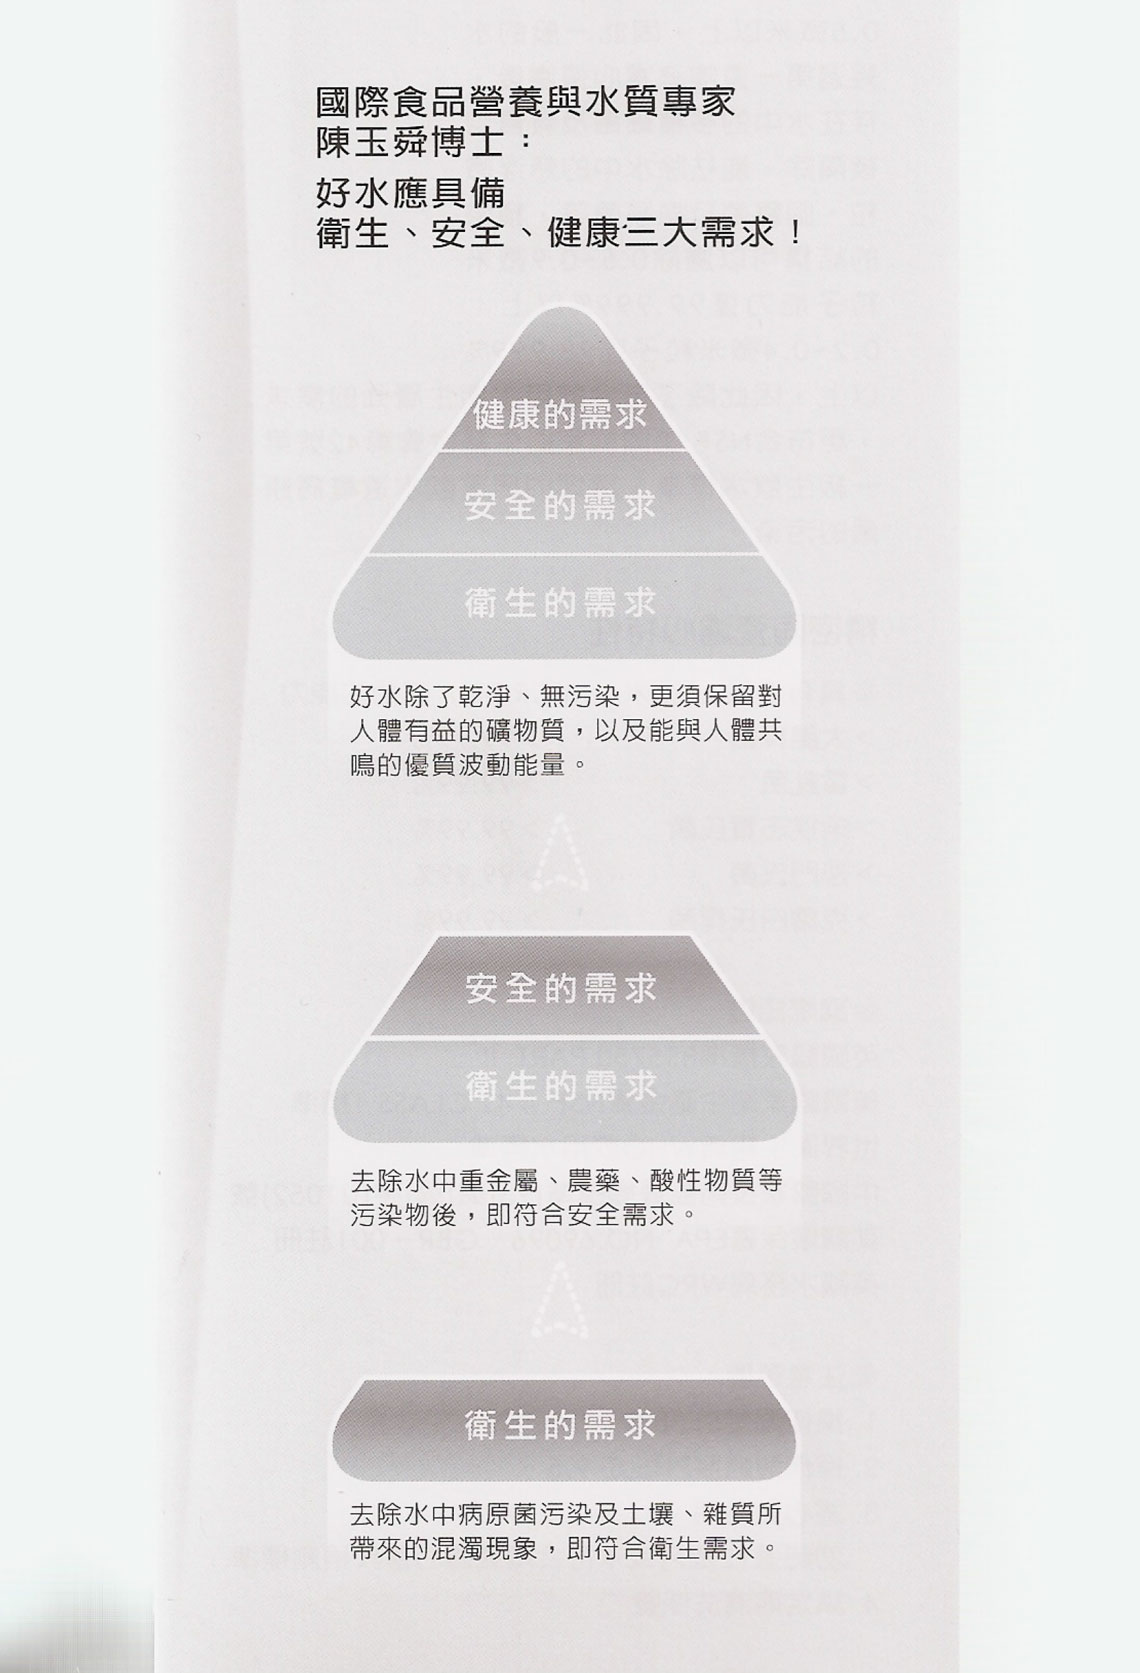 iWater_Brochure-_chinese-2